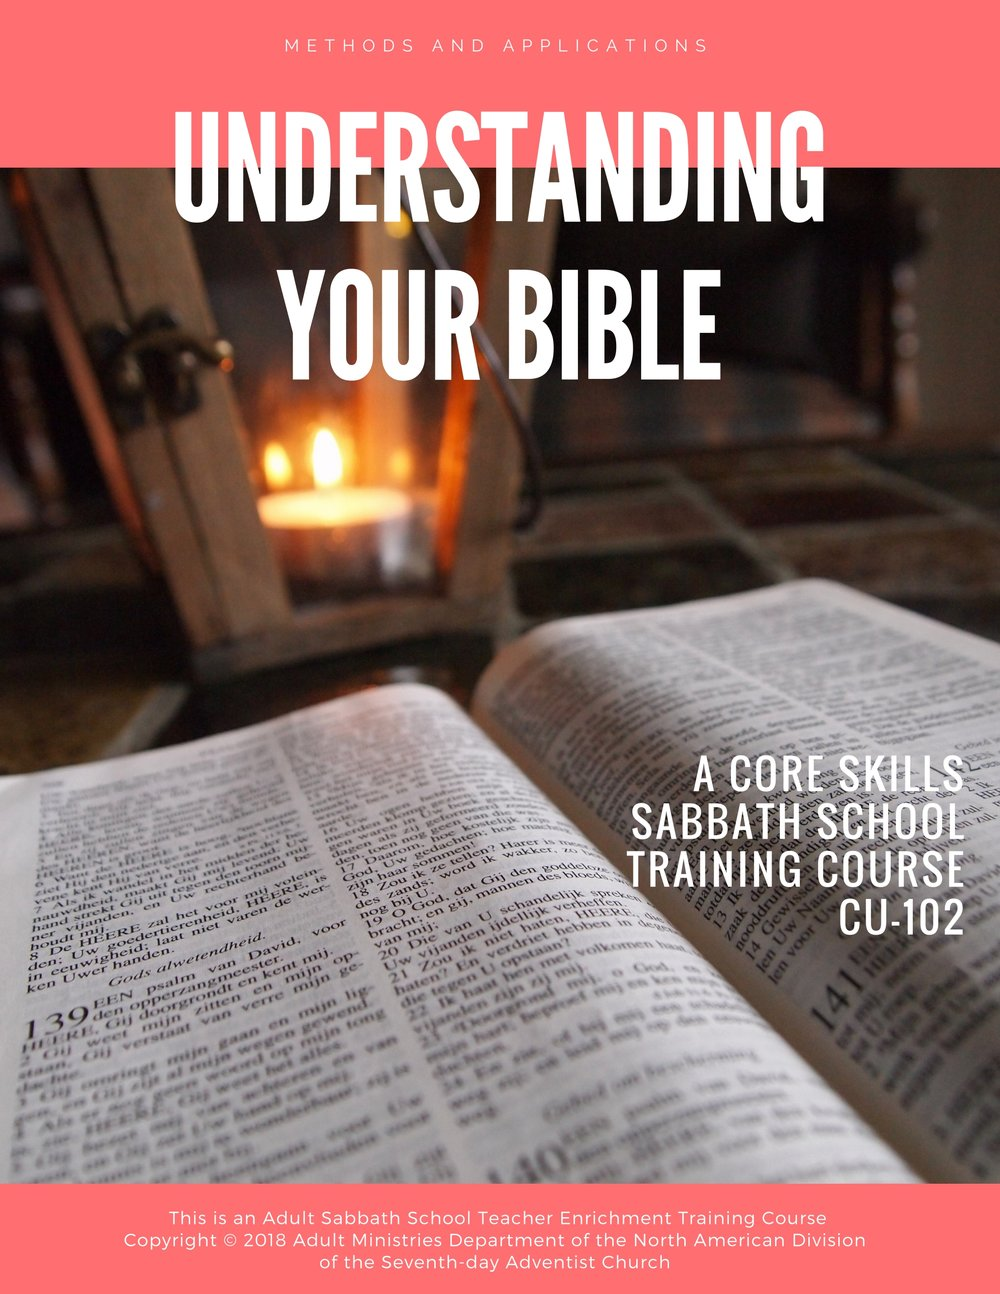 The course is designed as an overall introduction to the Bible. To some it may seem elemental, but it is always valuable to see the big picture and have in mind the broad outlines of one's textbook, in this case the entire Bible. - CLICK COVER TO VIEW>>>